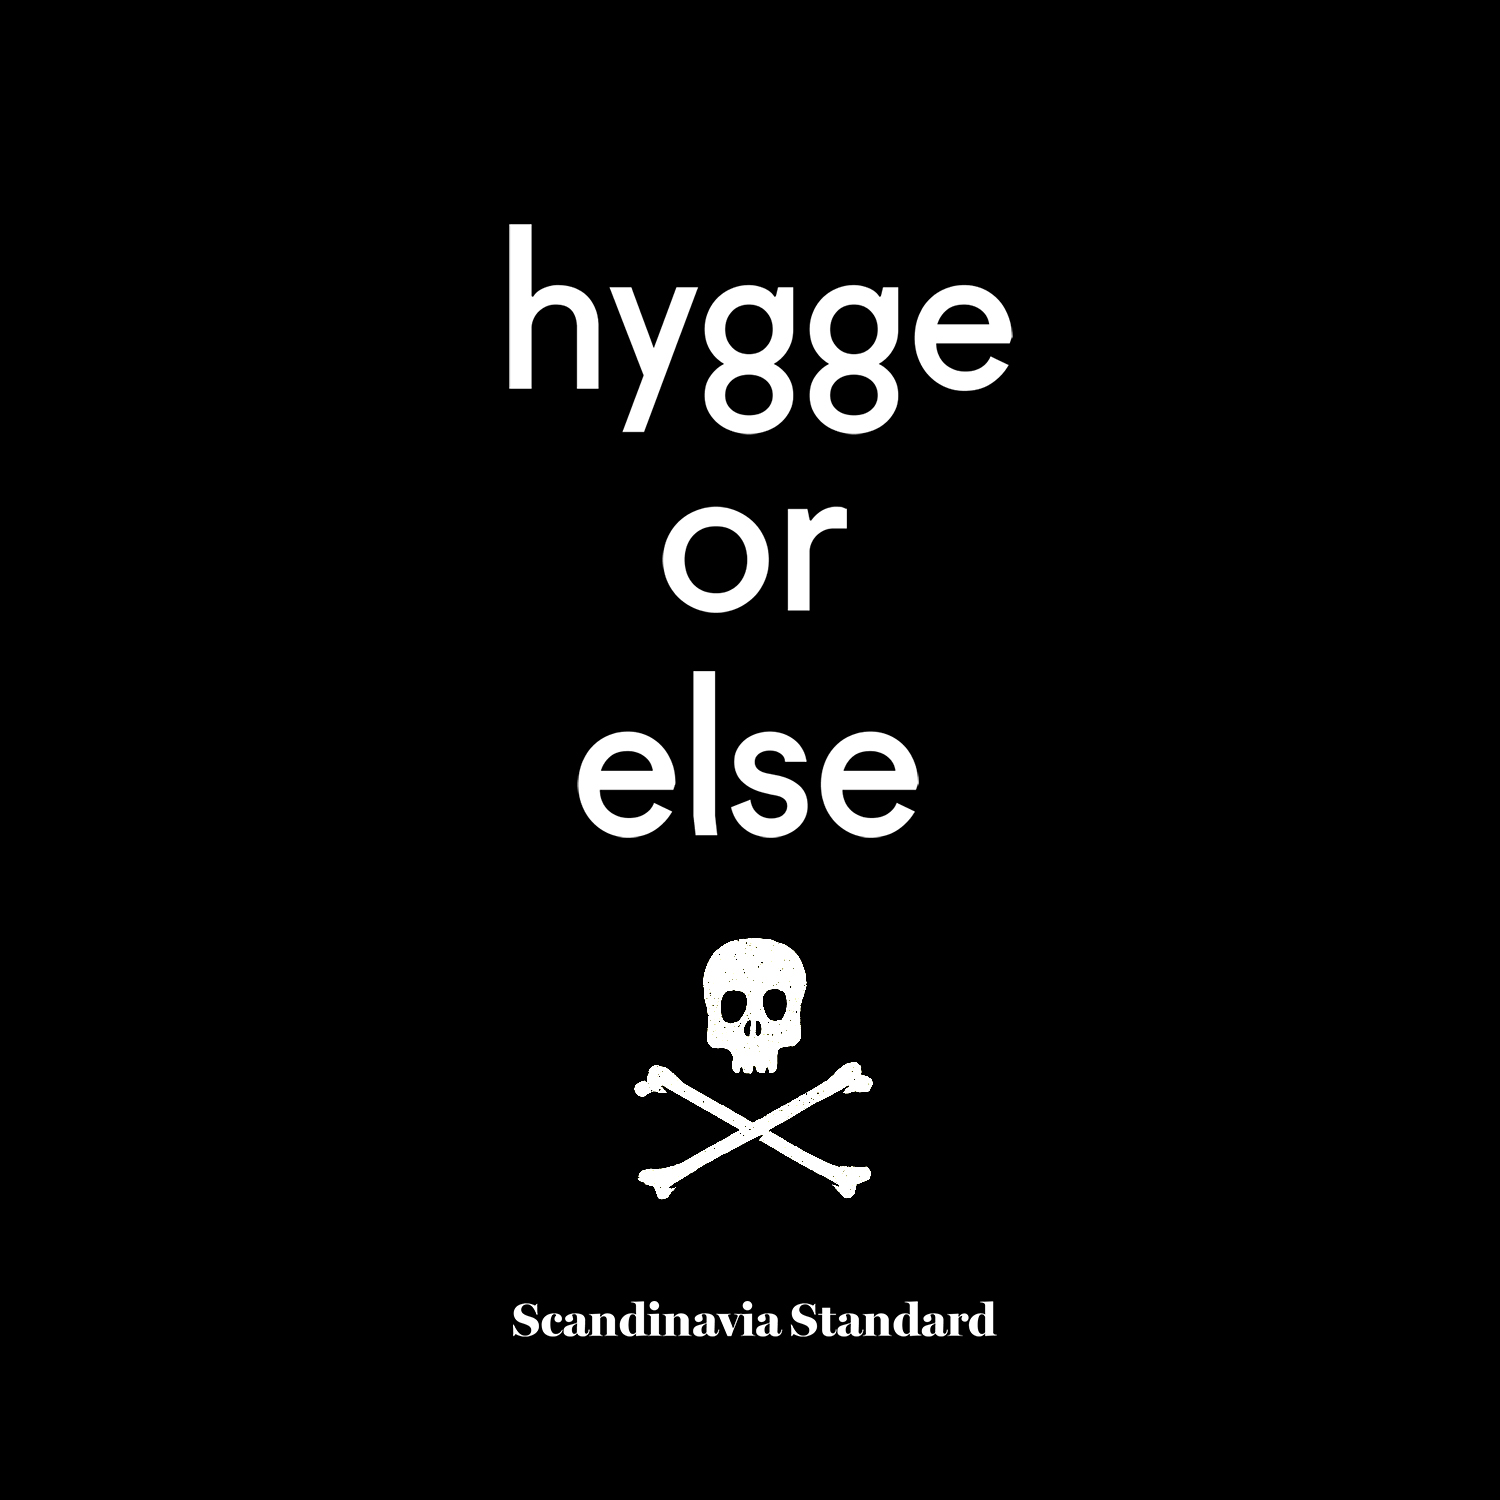 Hygge or Else